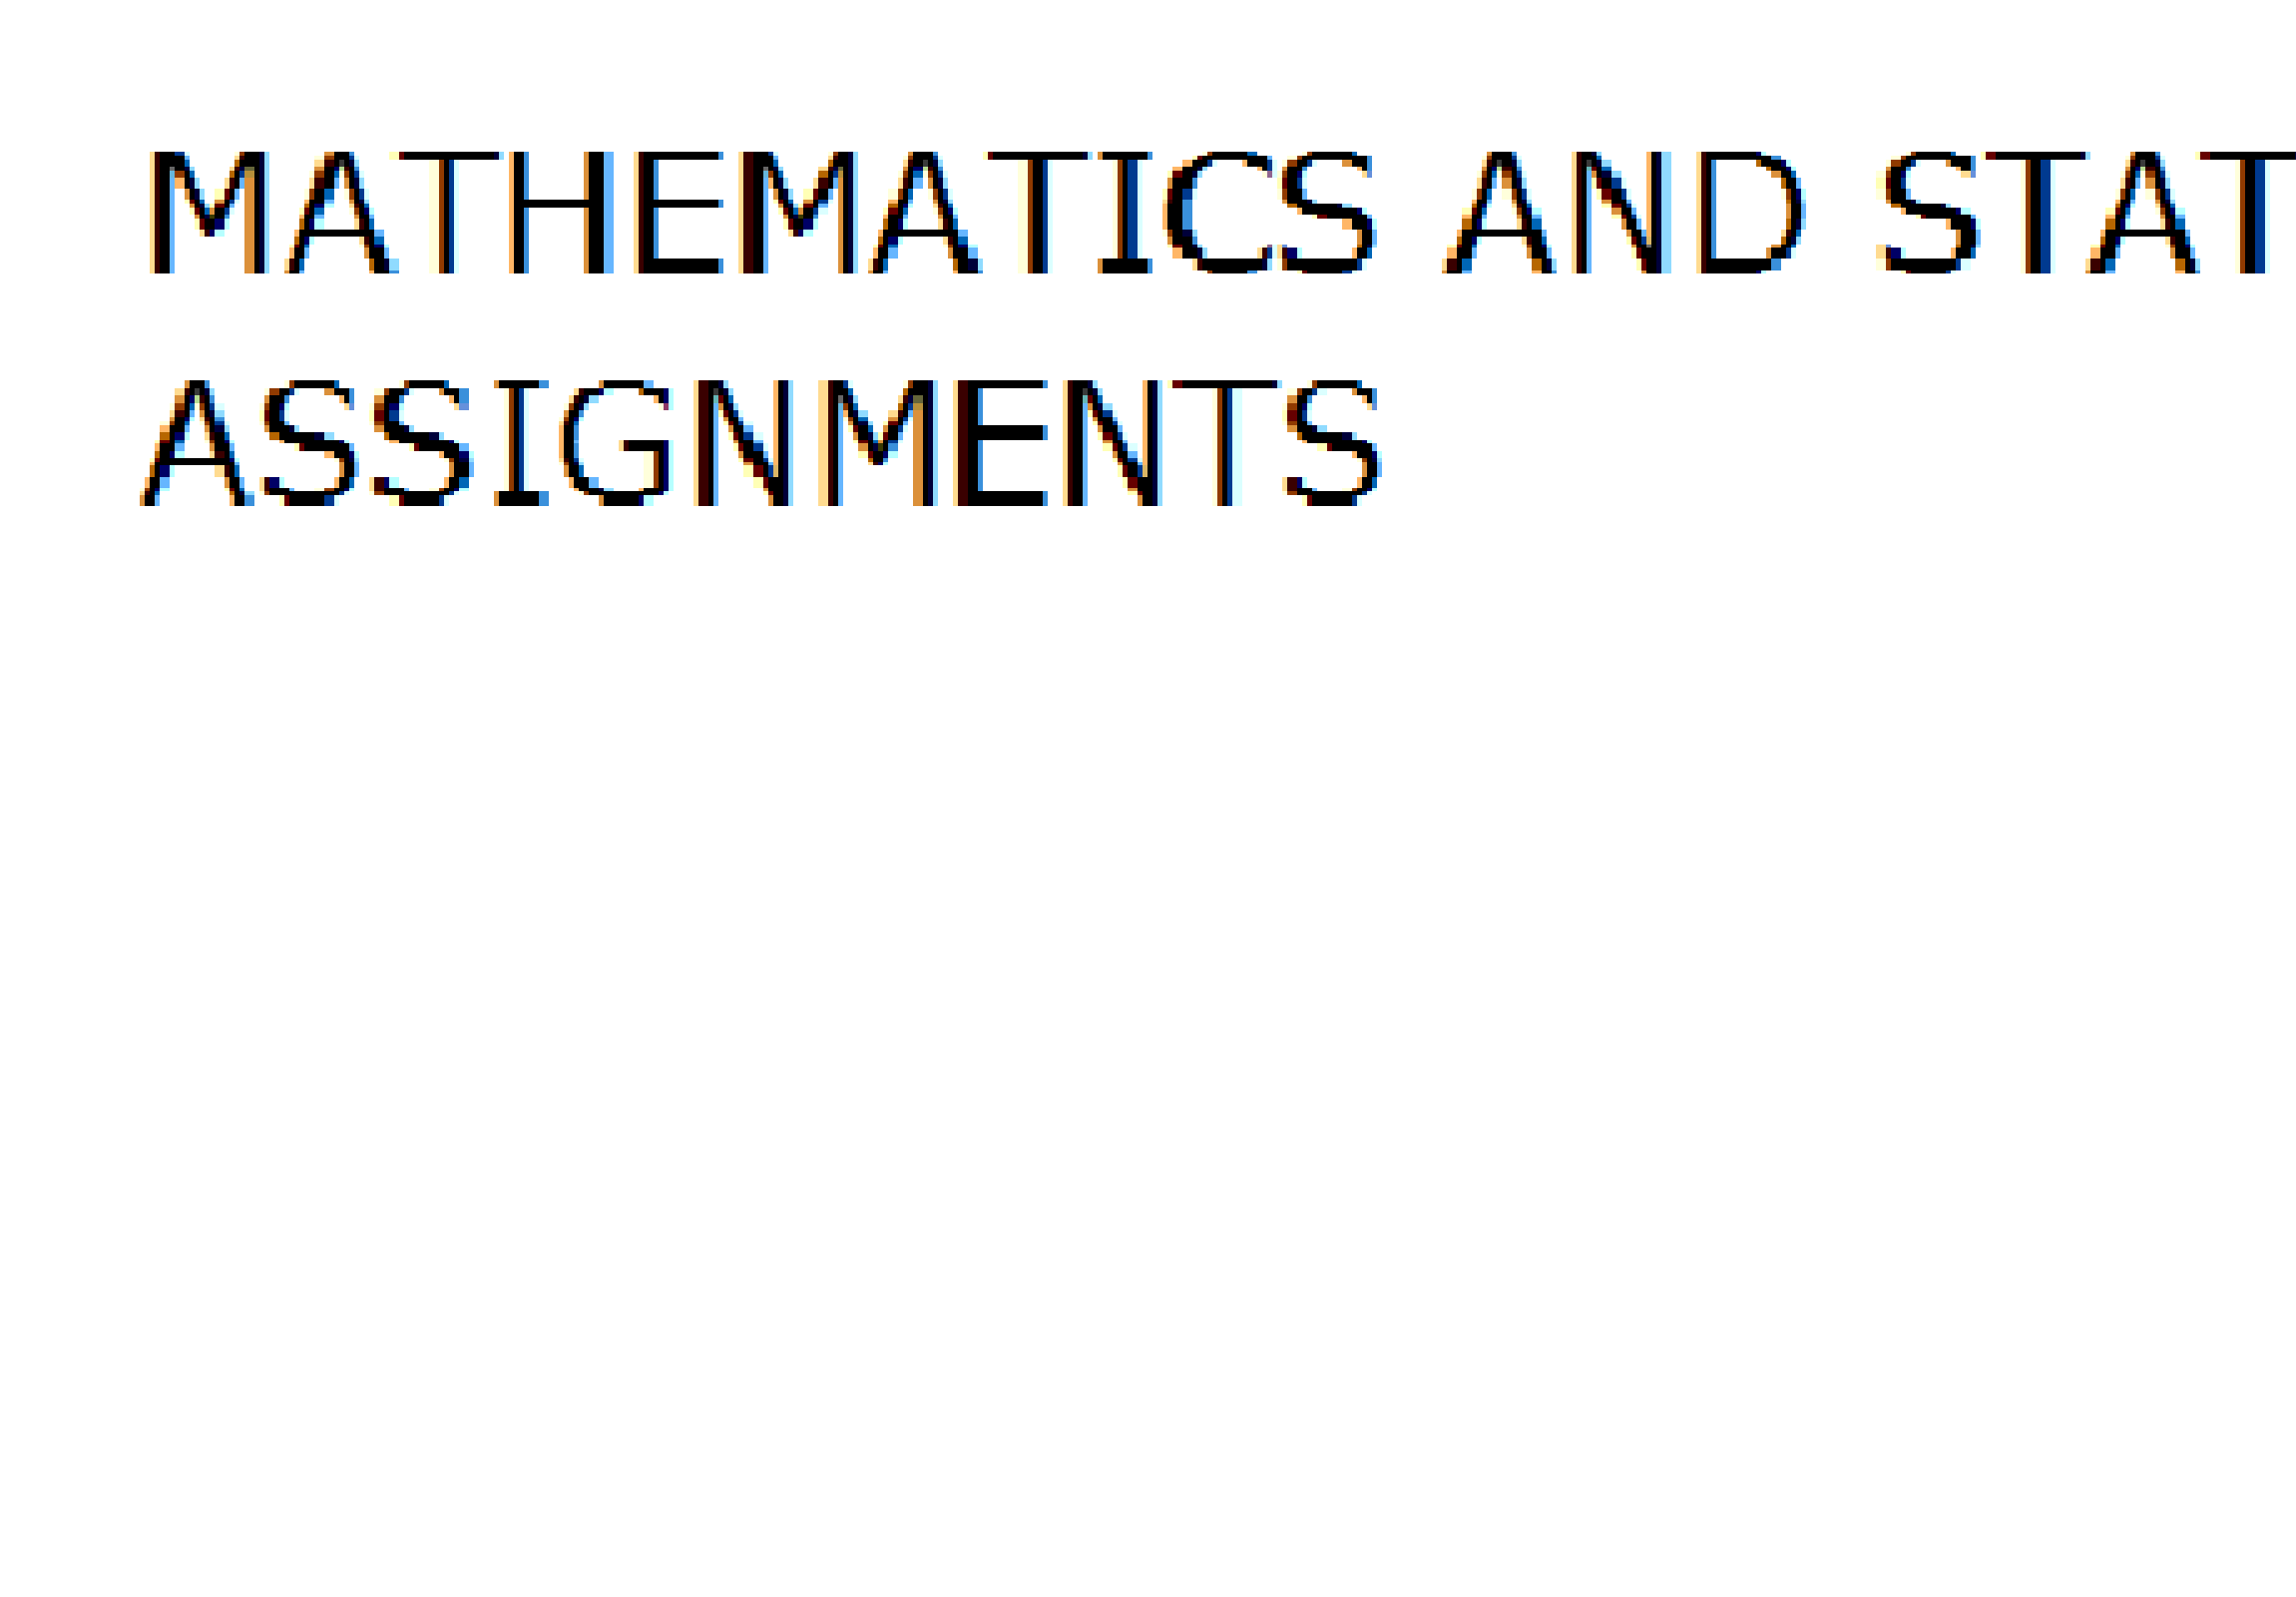 solve your assignments related to mathematics.